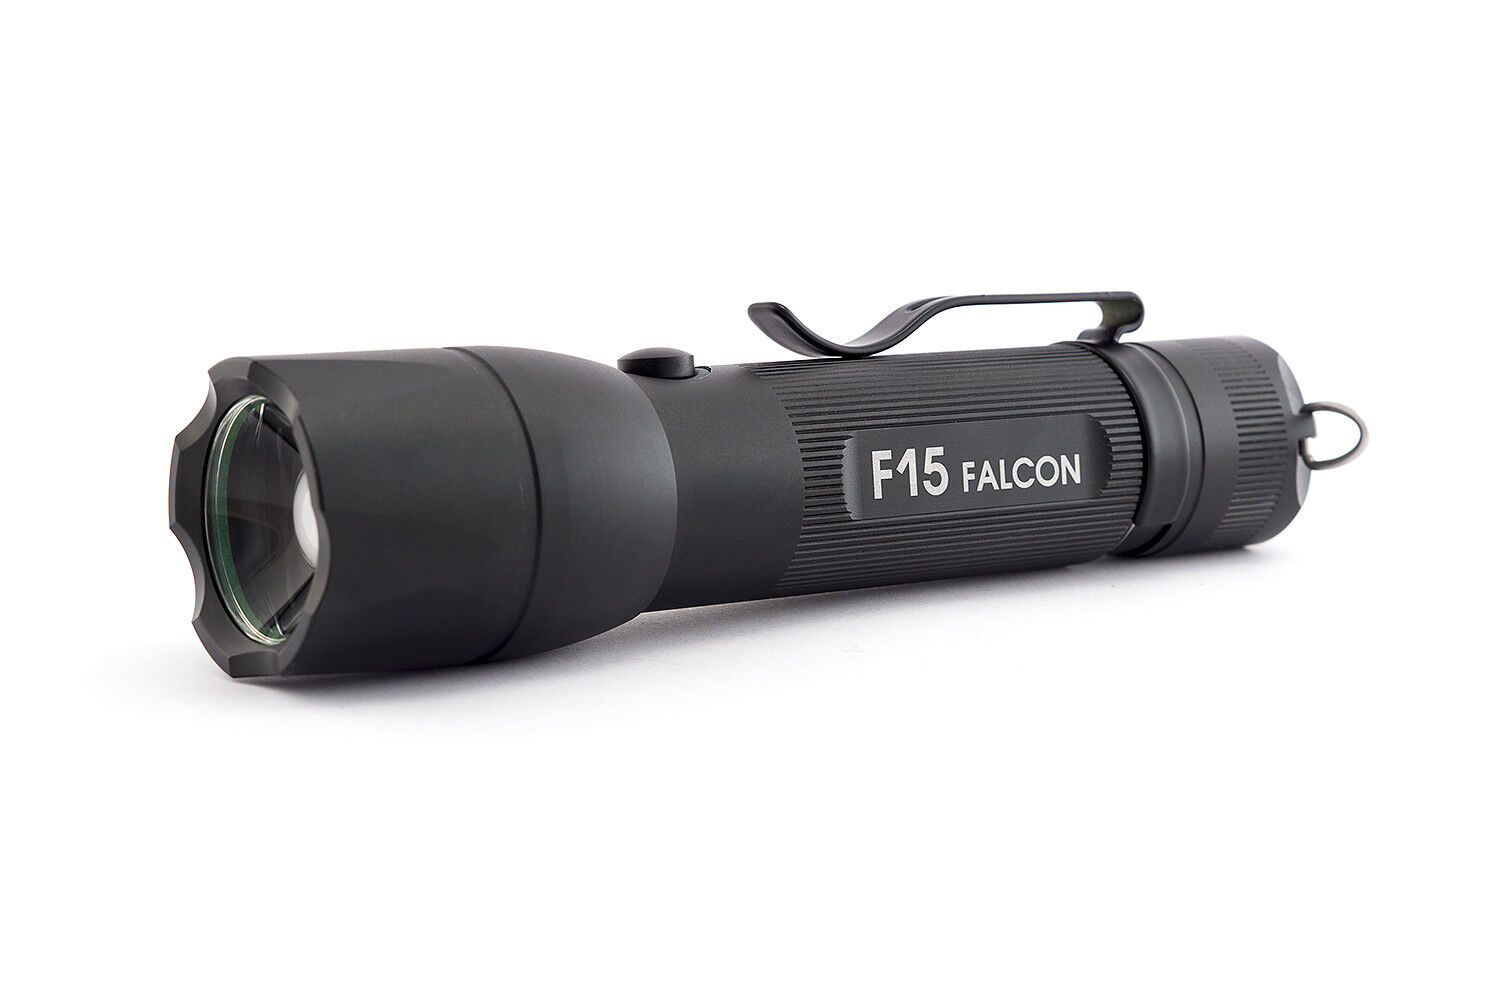 YLP FALCON F15 FLASHLIGHT 800LM WITH ADJUSTABLE FOCUS NEUTRAL WHITE, 4200К